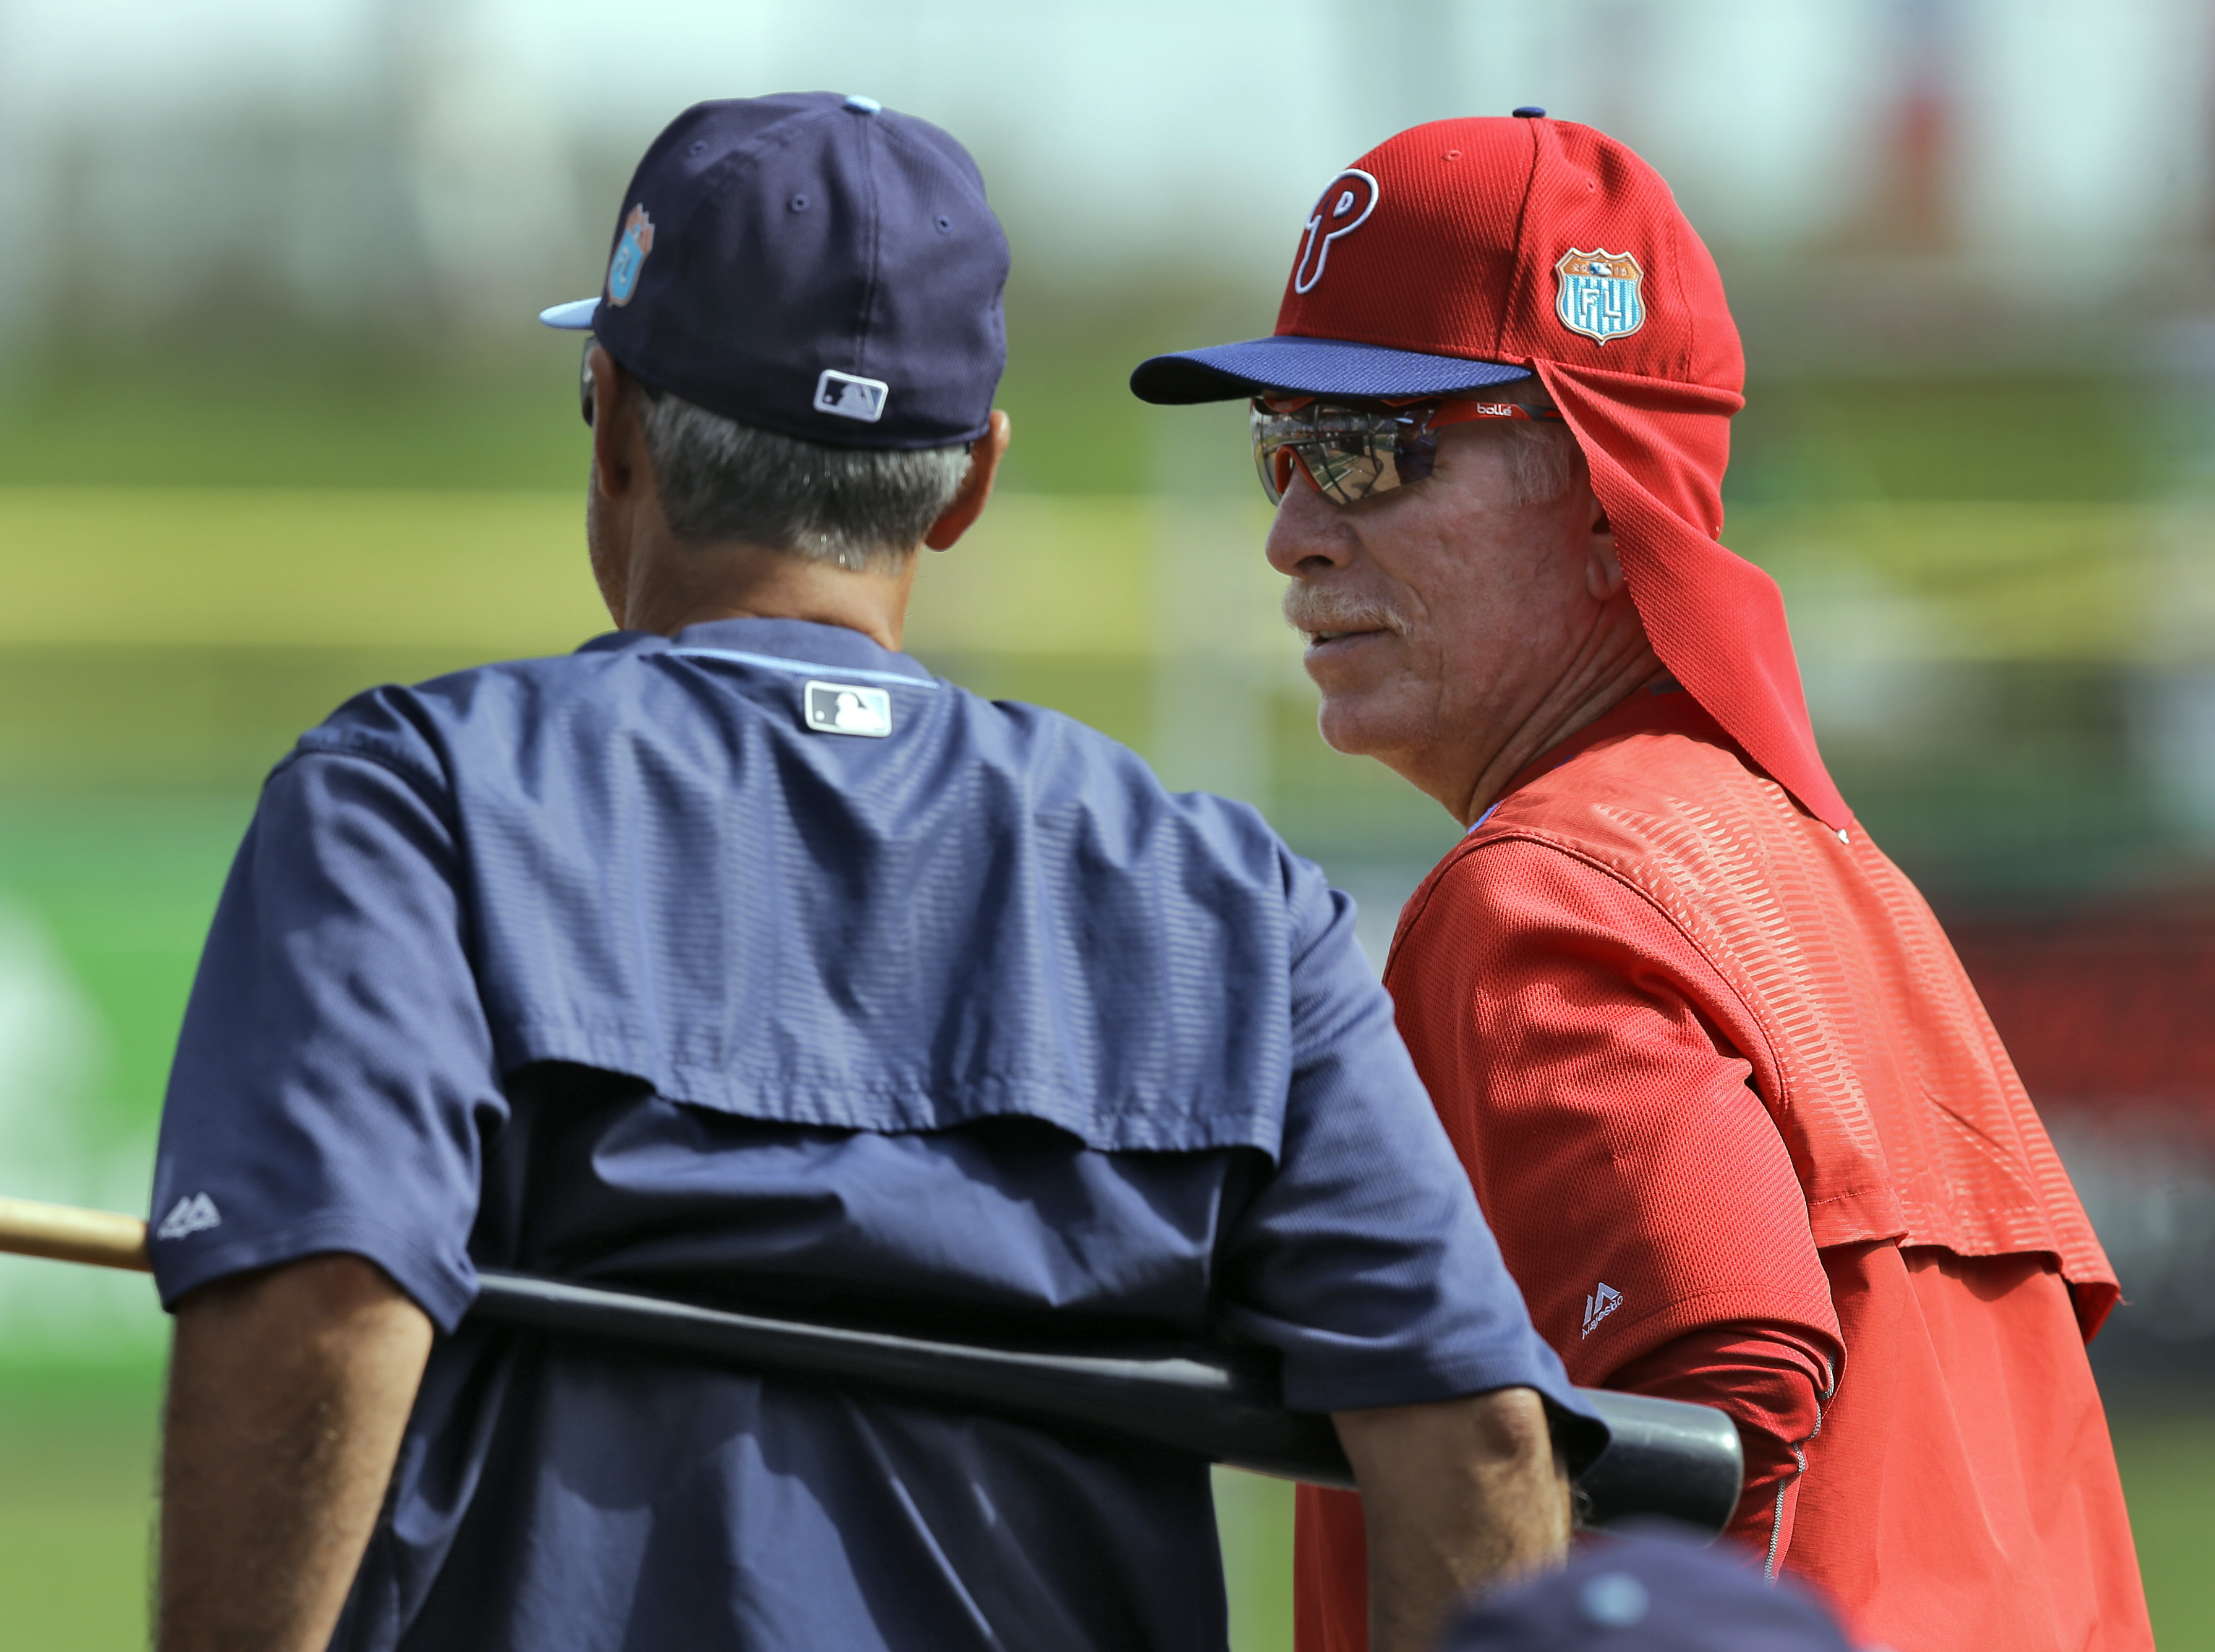 """FILE - In this March 17, 2016, file photo, Philadelphia Phillies instructor Mike Schmidt, right, talks to Tampa Bay Rays bench coach Tom Foley before a spring training baseball game in Clearwater, Fla. """"The players used to settle issues themselves. Cross"""